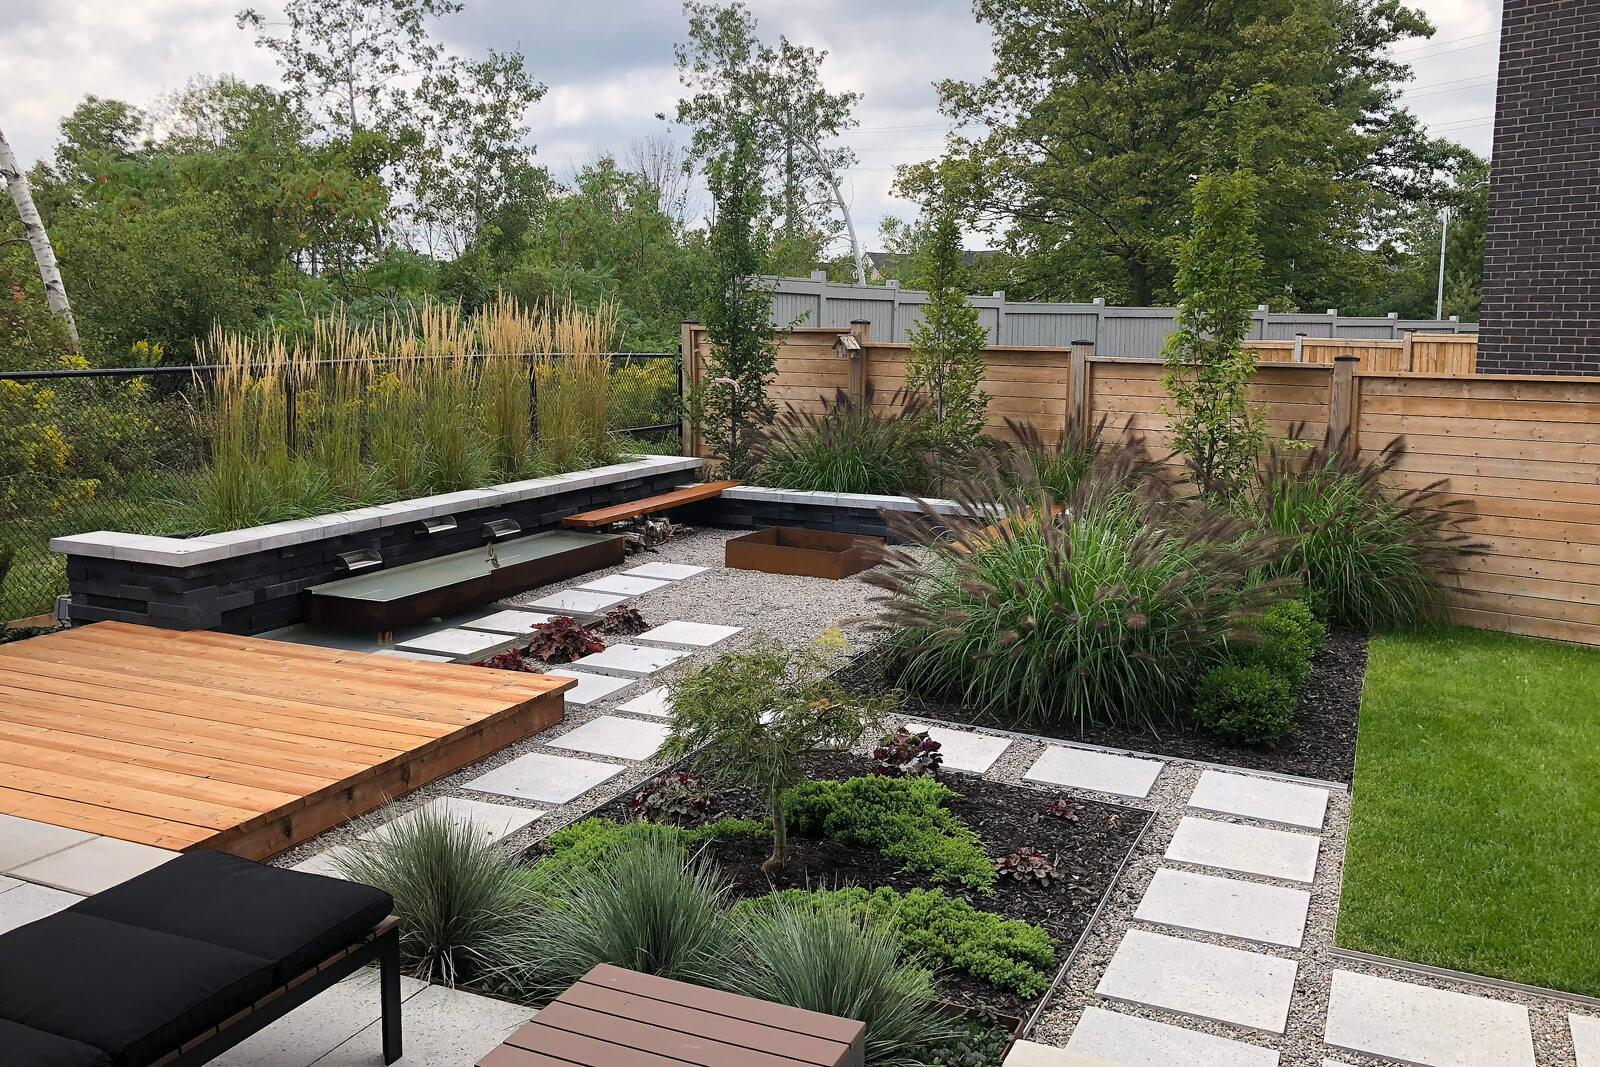 Fusion Landscaping garden at Canada Blooms 2019